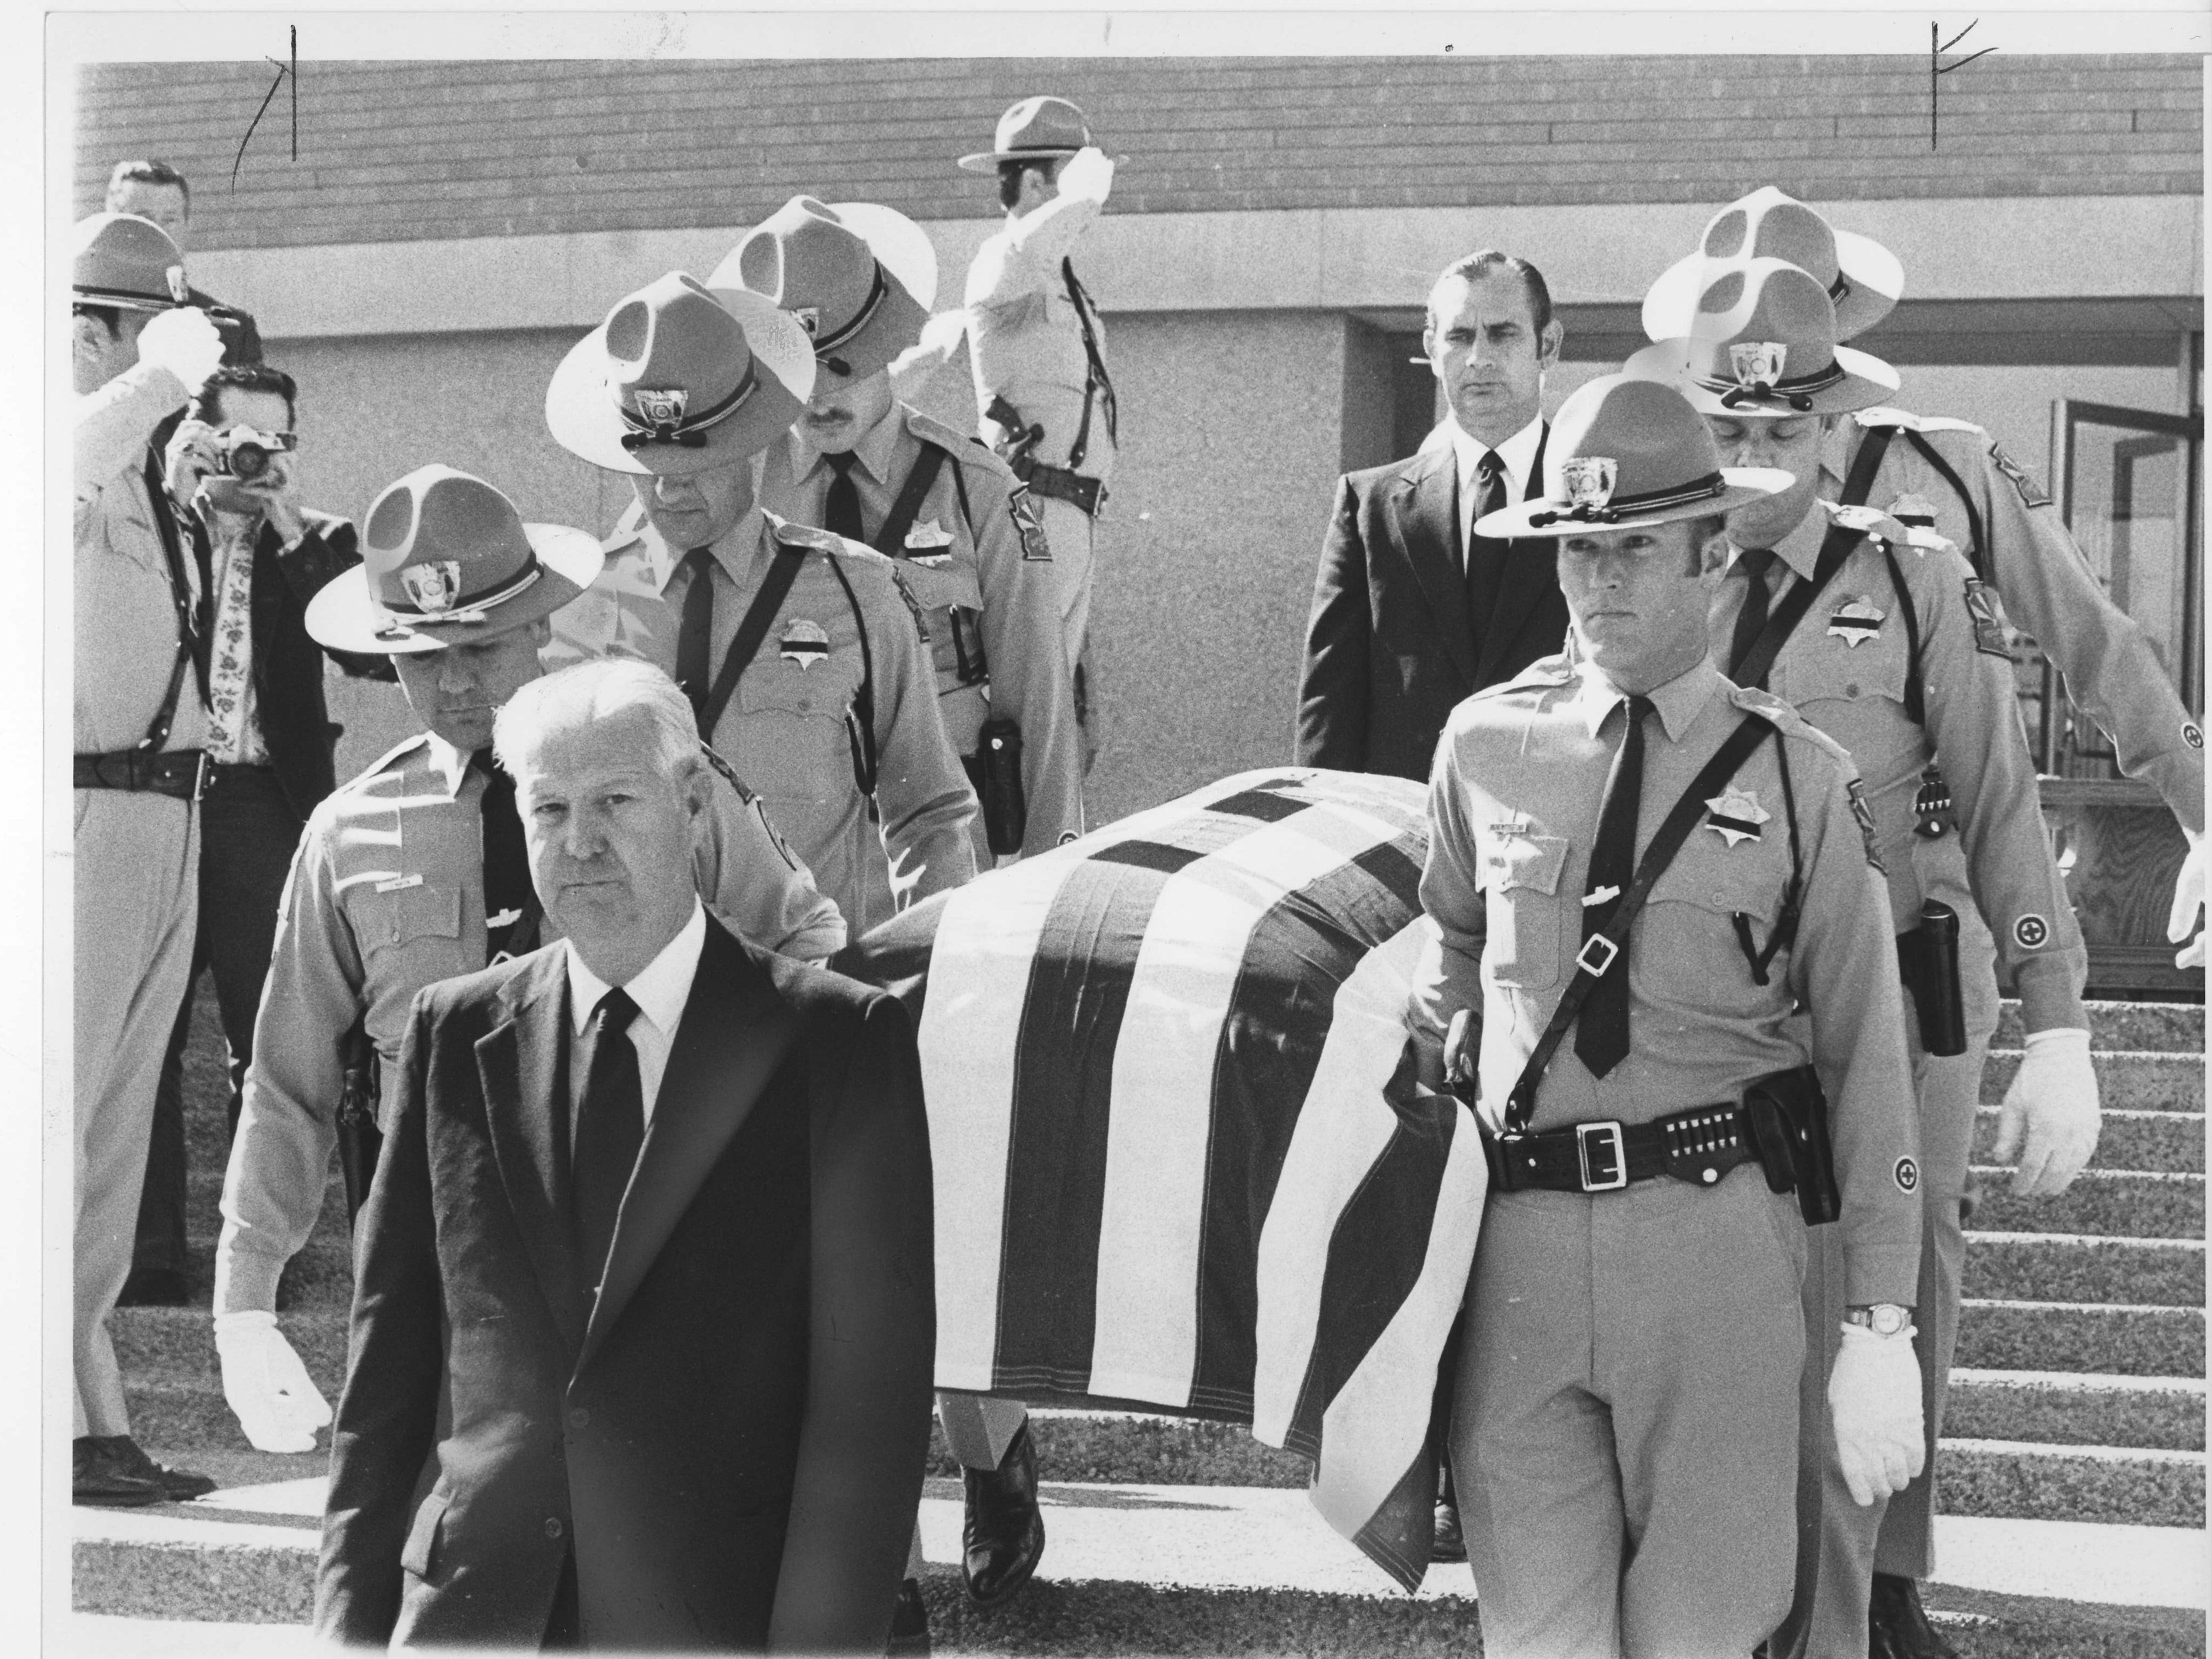 The casket of former U.S. Sen. Carl Hayden is carried at his funeral in 1972.